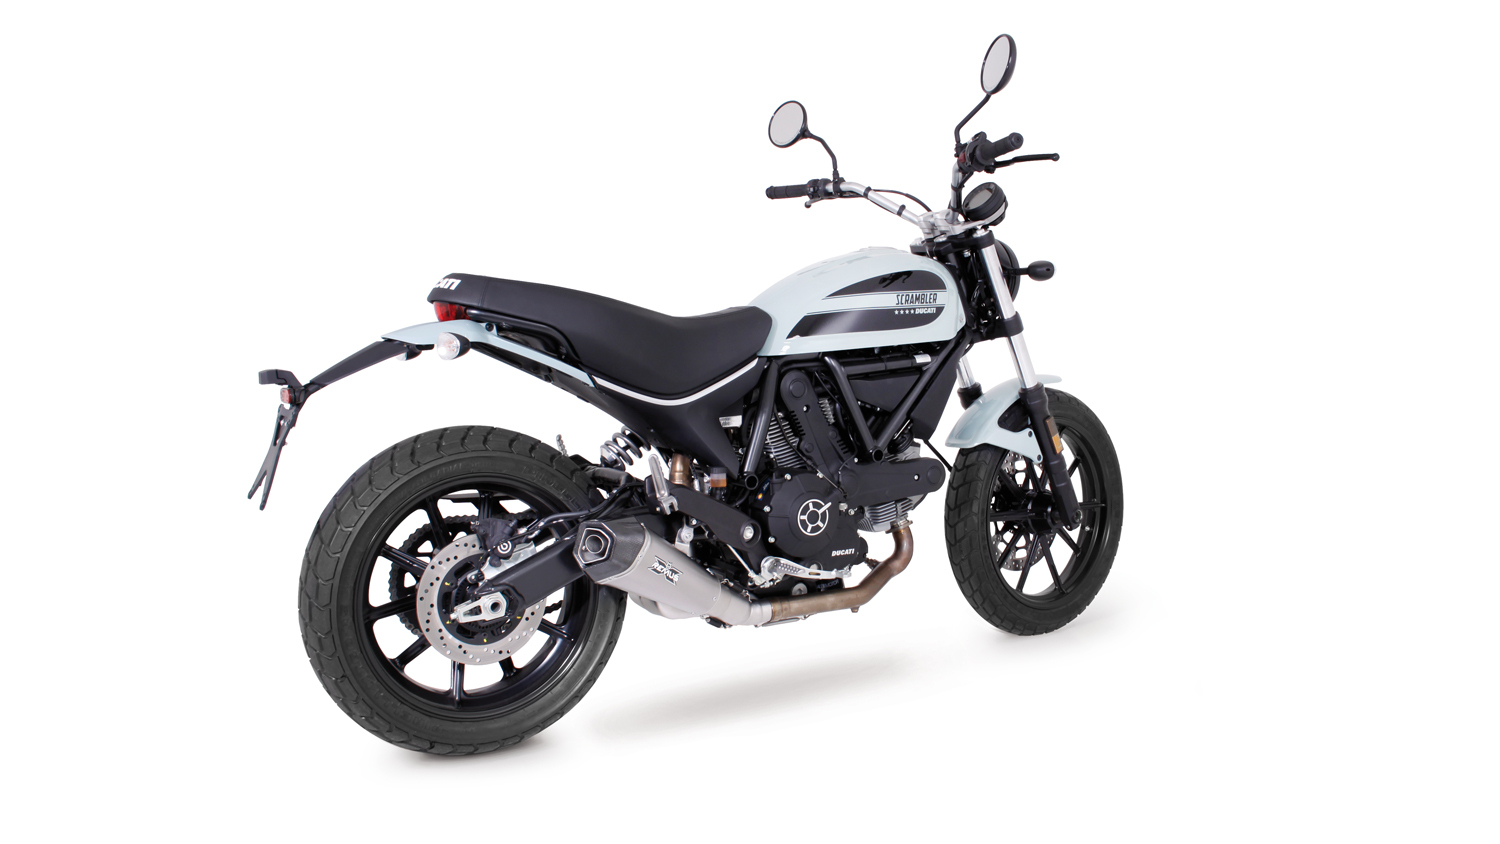 REMUS HYPERCONE silencieux titane Ducati Scrambler Sixty2, CEE - Image 1